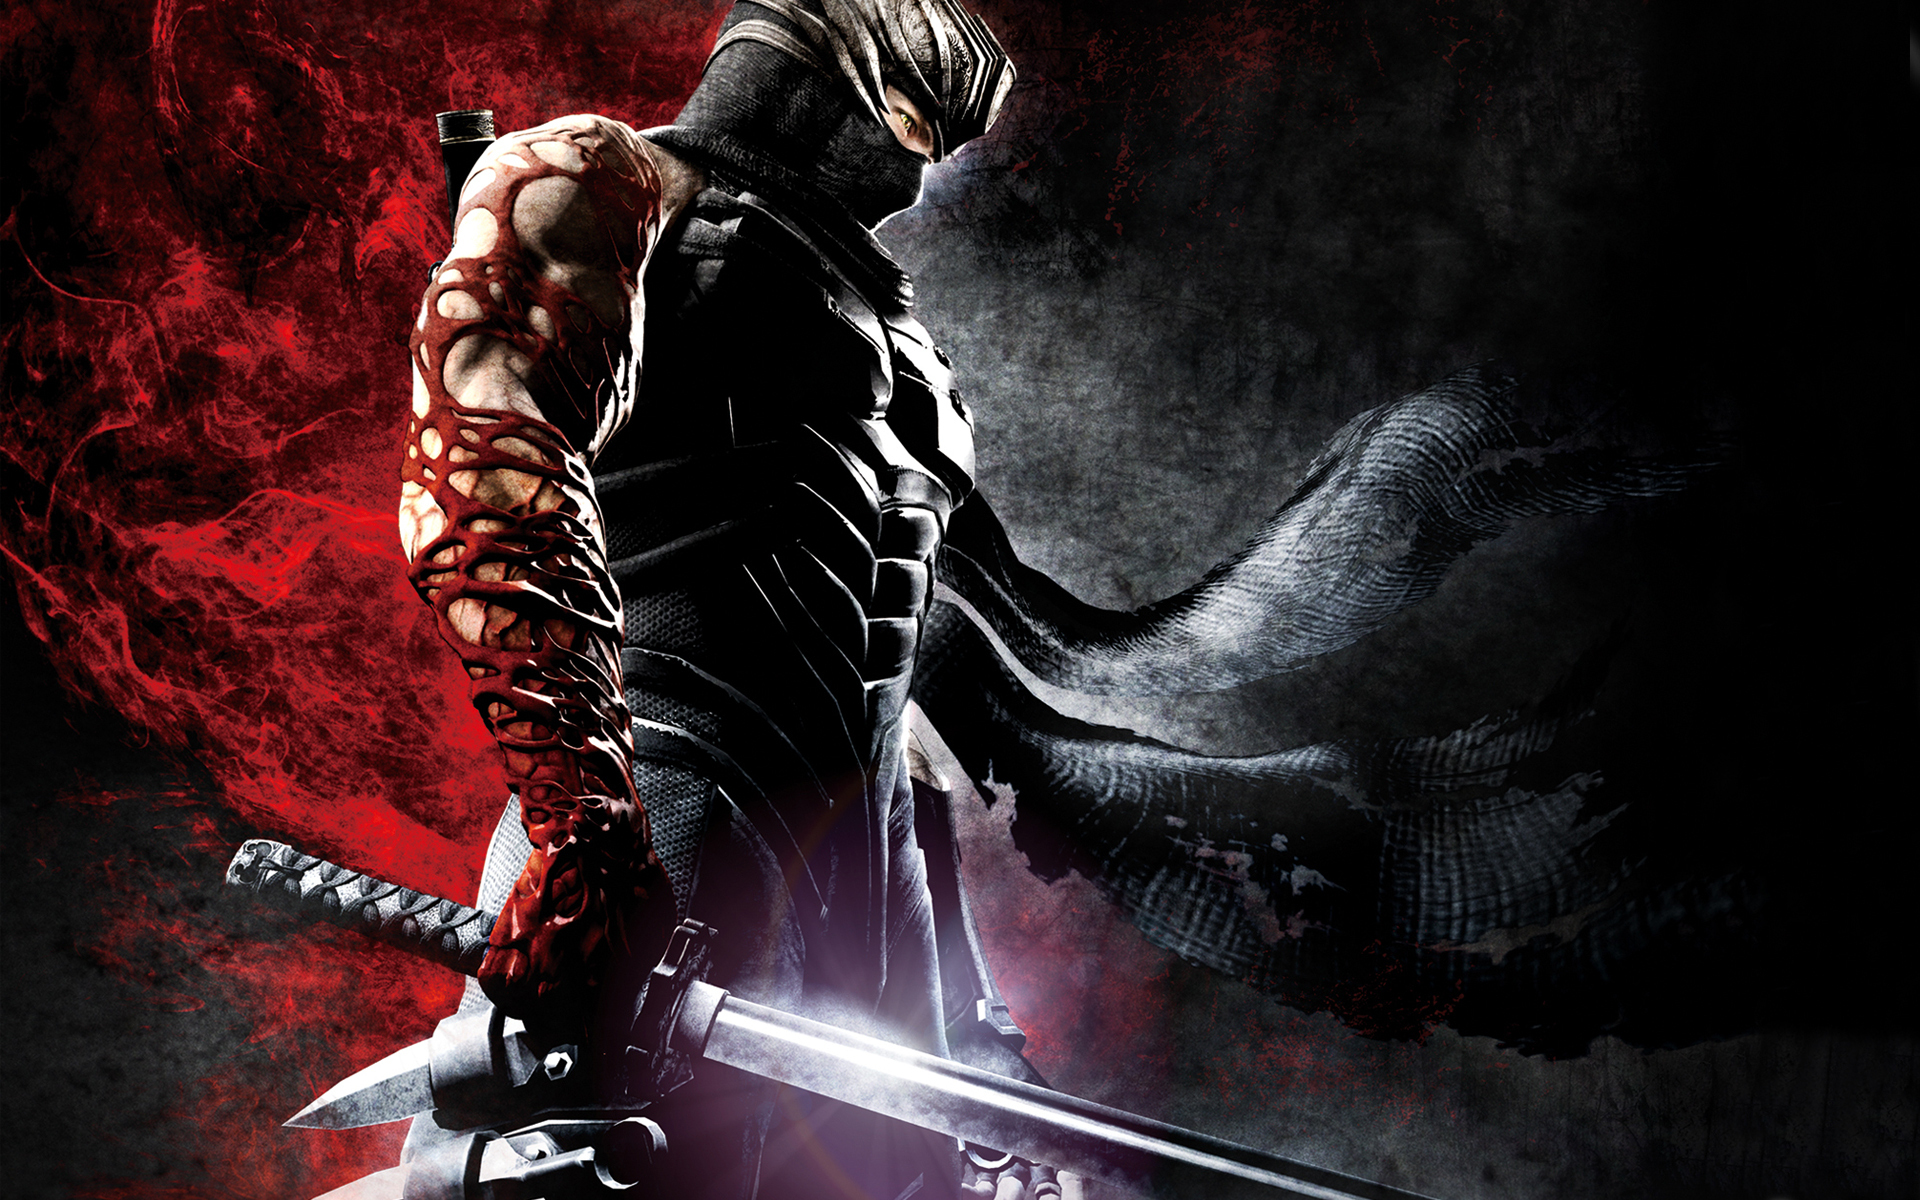 ninja gaiden 3 ps3 Wallpaper HD Wallpapers 1920x1200